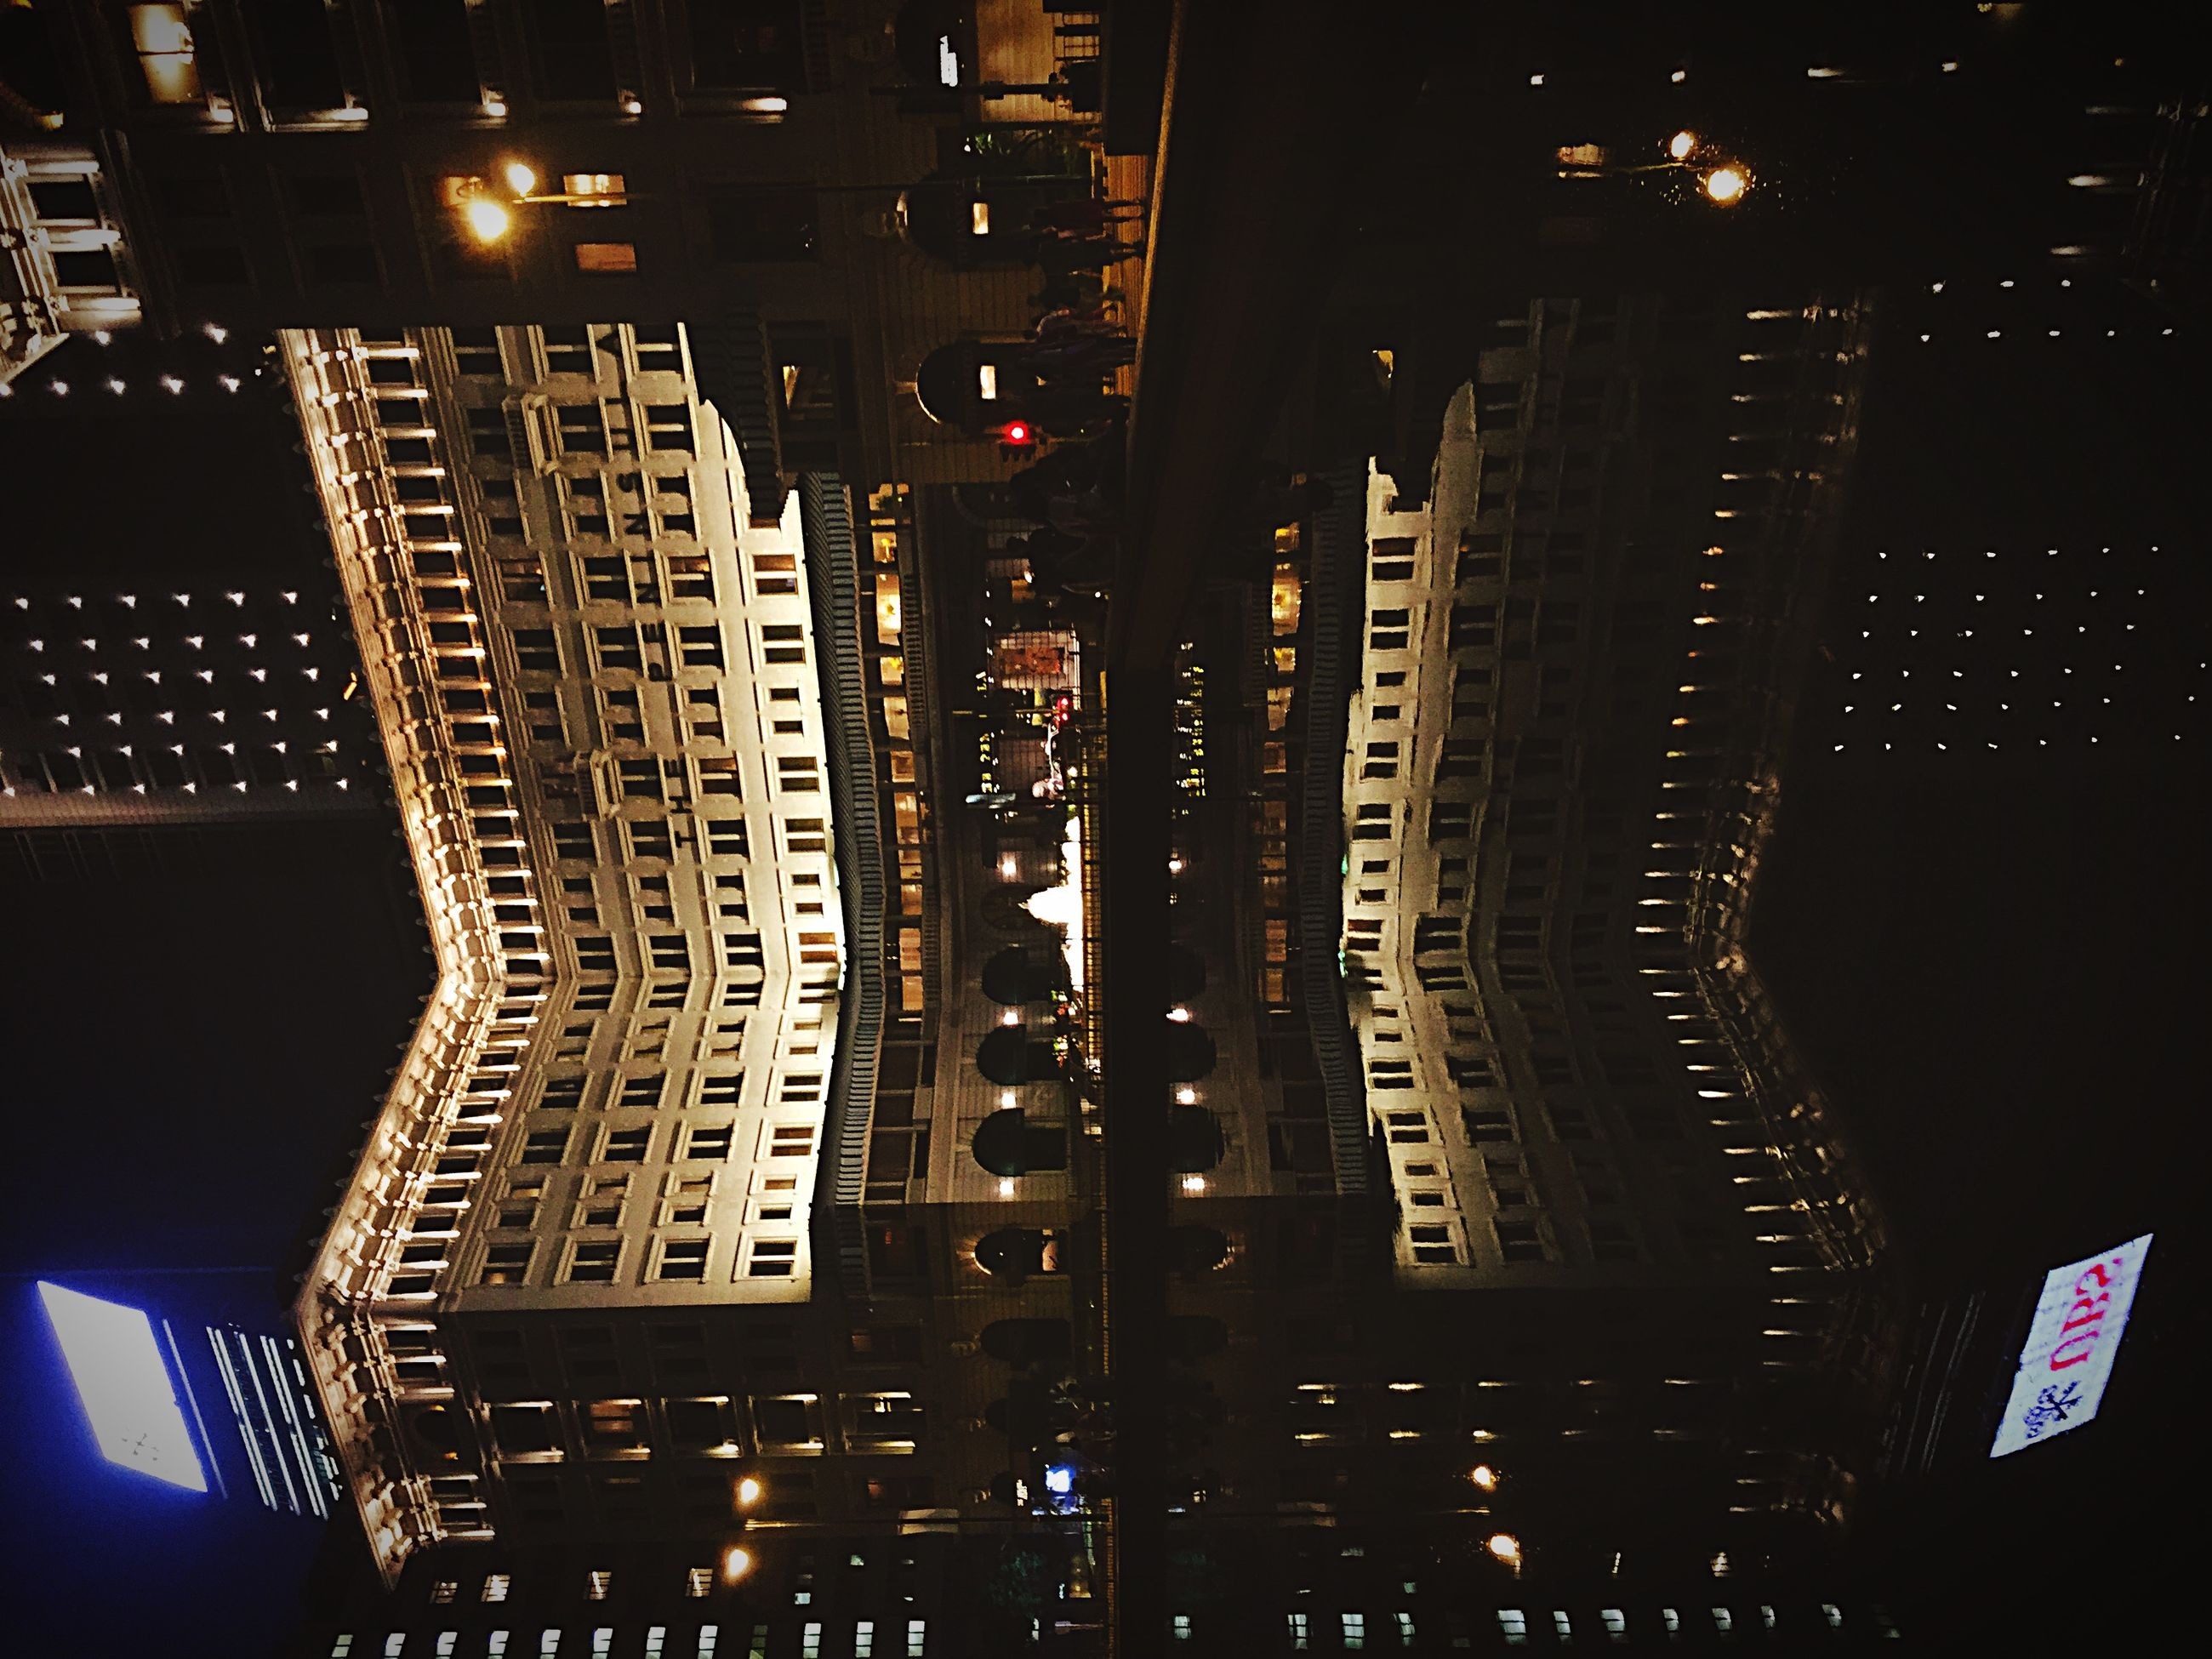 night, illuminated, building exterior, architecture, built structure, city, skyscraper, modern, office building, tall - high, tower, low angle view, building, cityscape, dark, city life, financial district, residential building, no people, outdoors